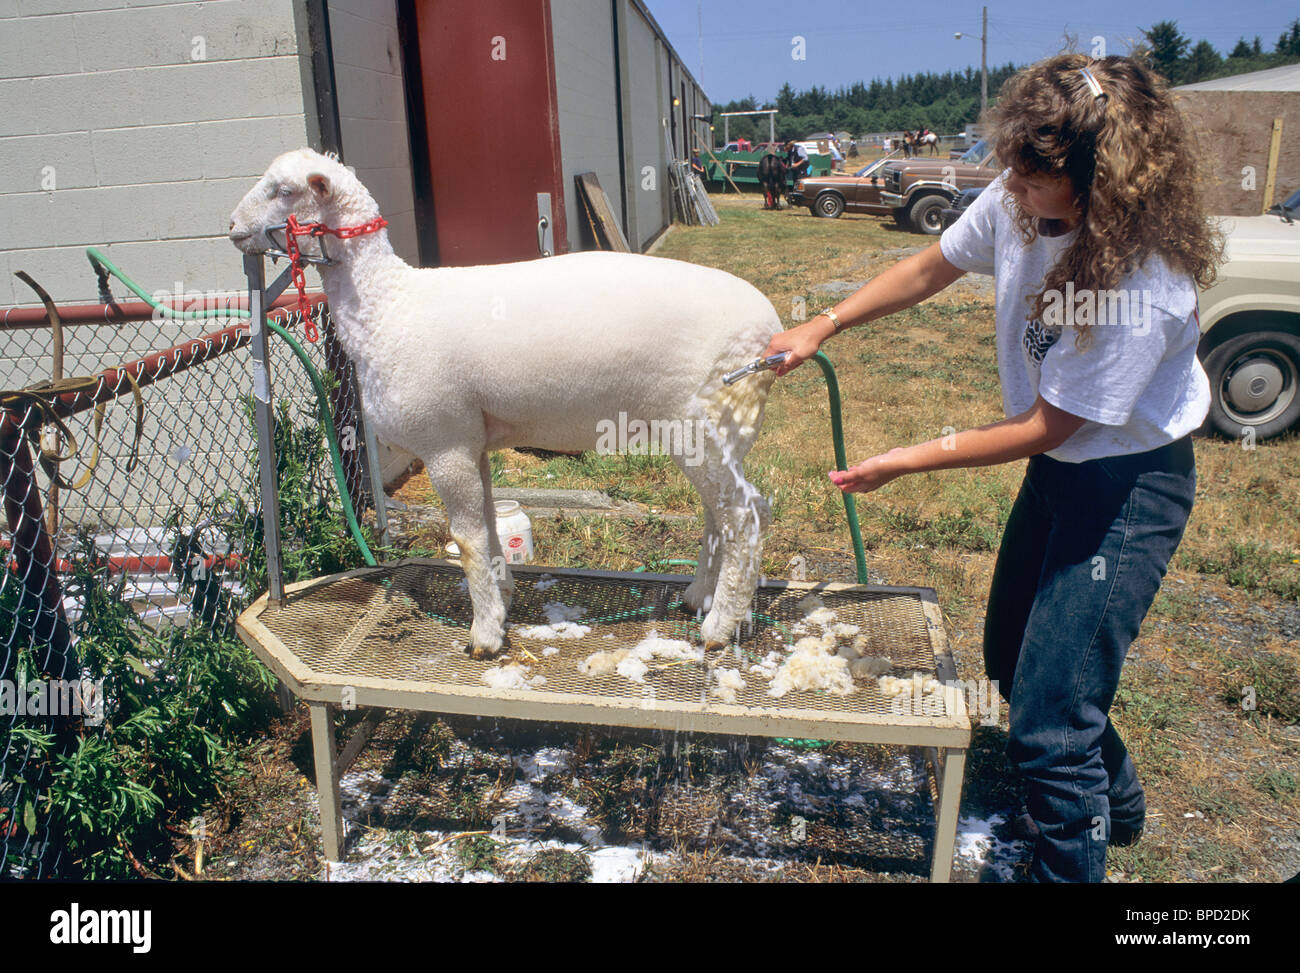 Le toilettage de l'adolescence, de l'élevage de moutons Junior compétition, Photo Stock